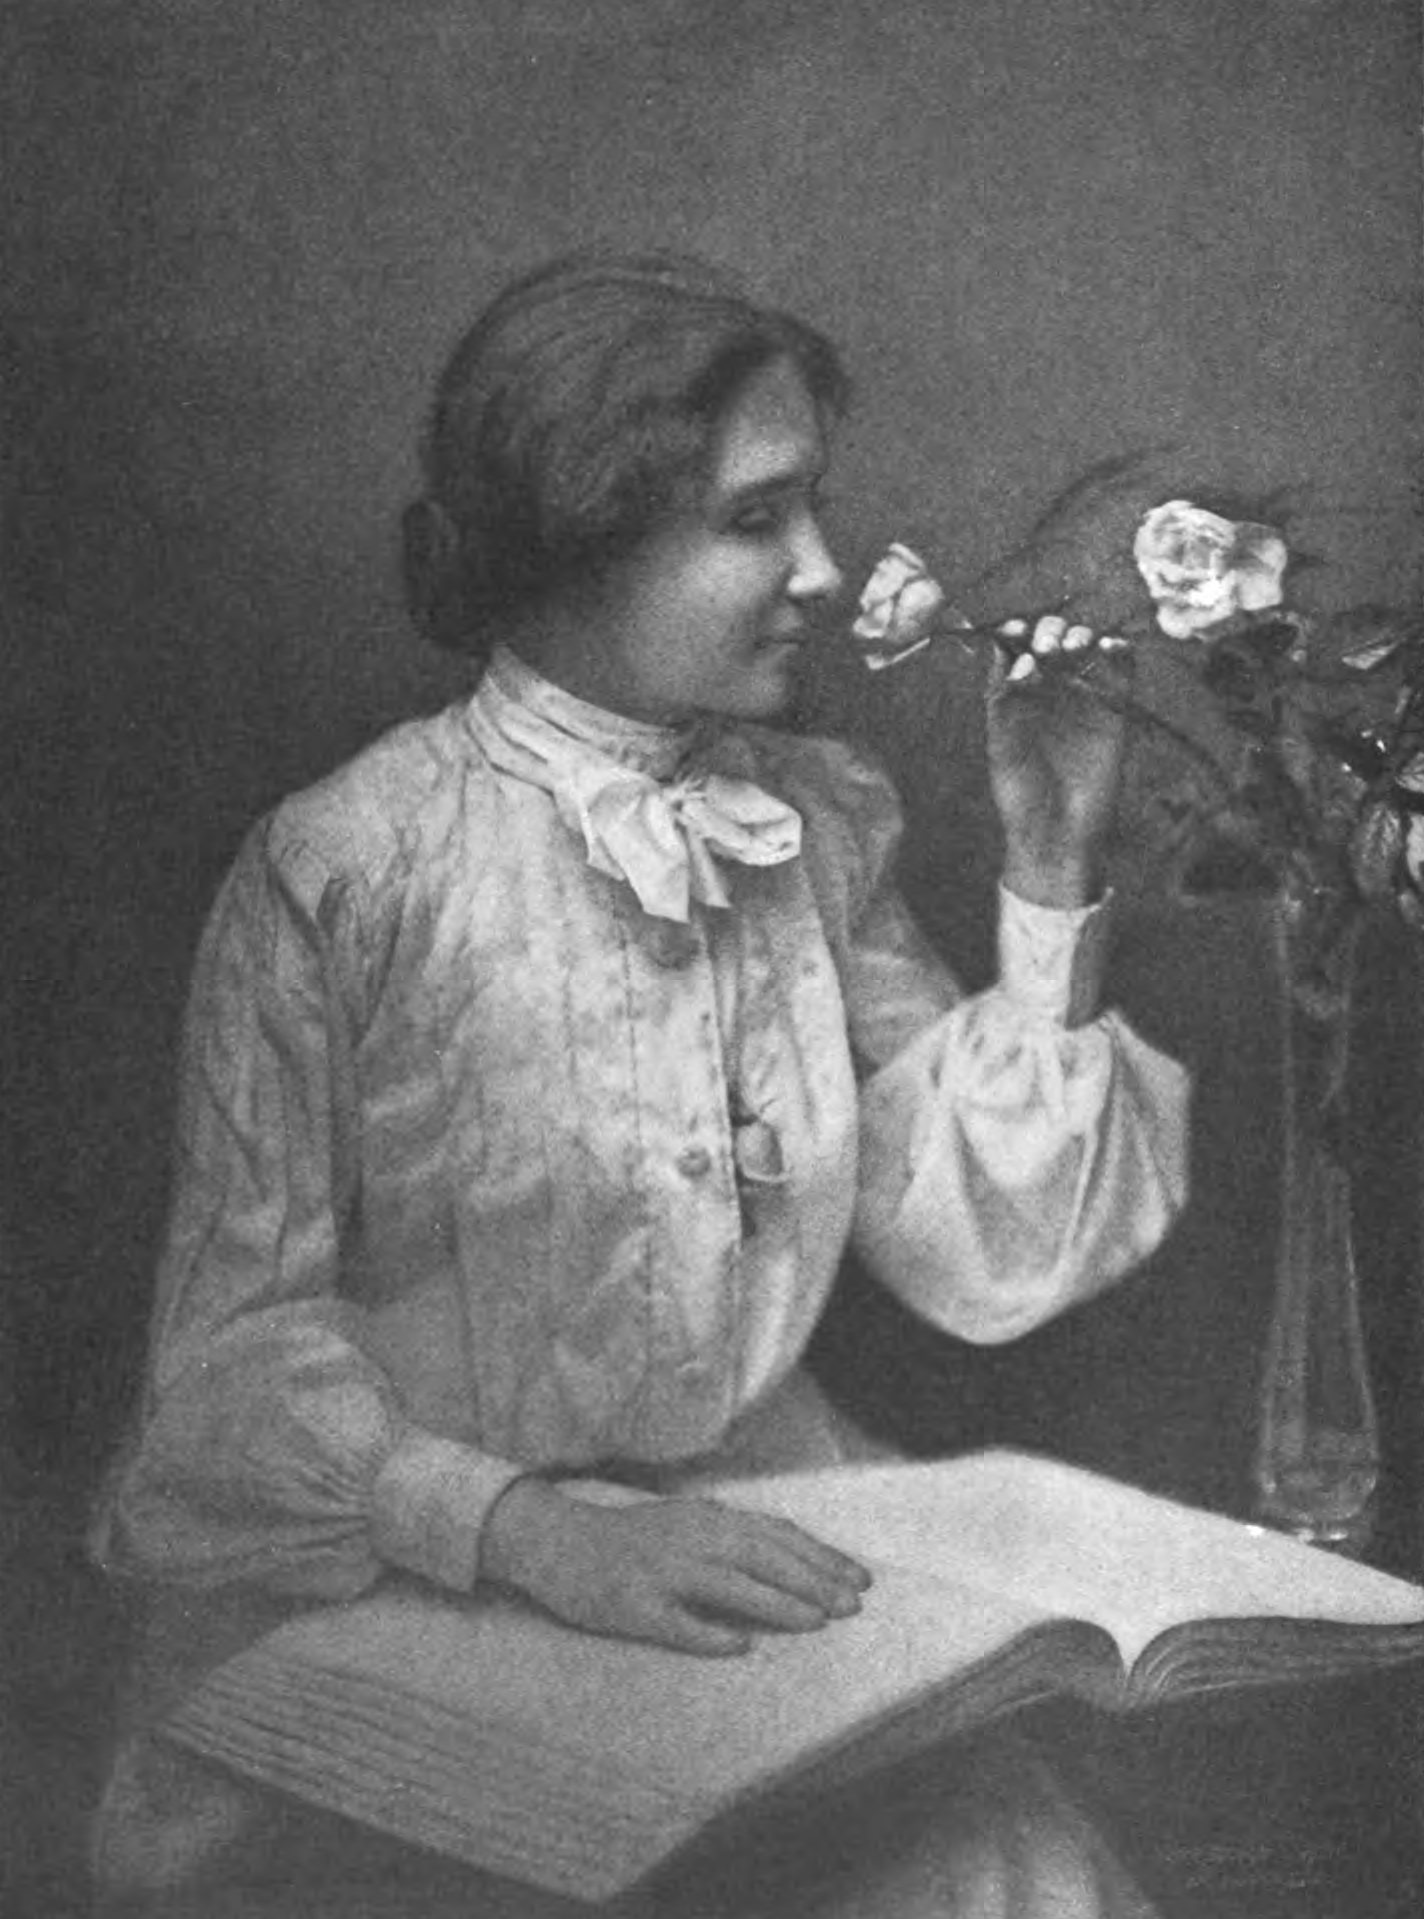 7 Bits About Optimism From Helen Keller